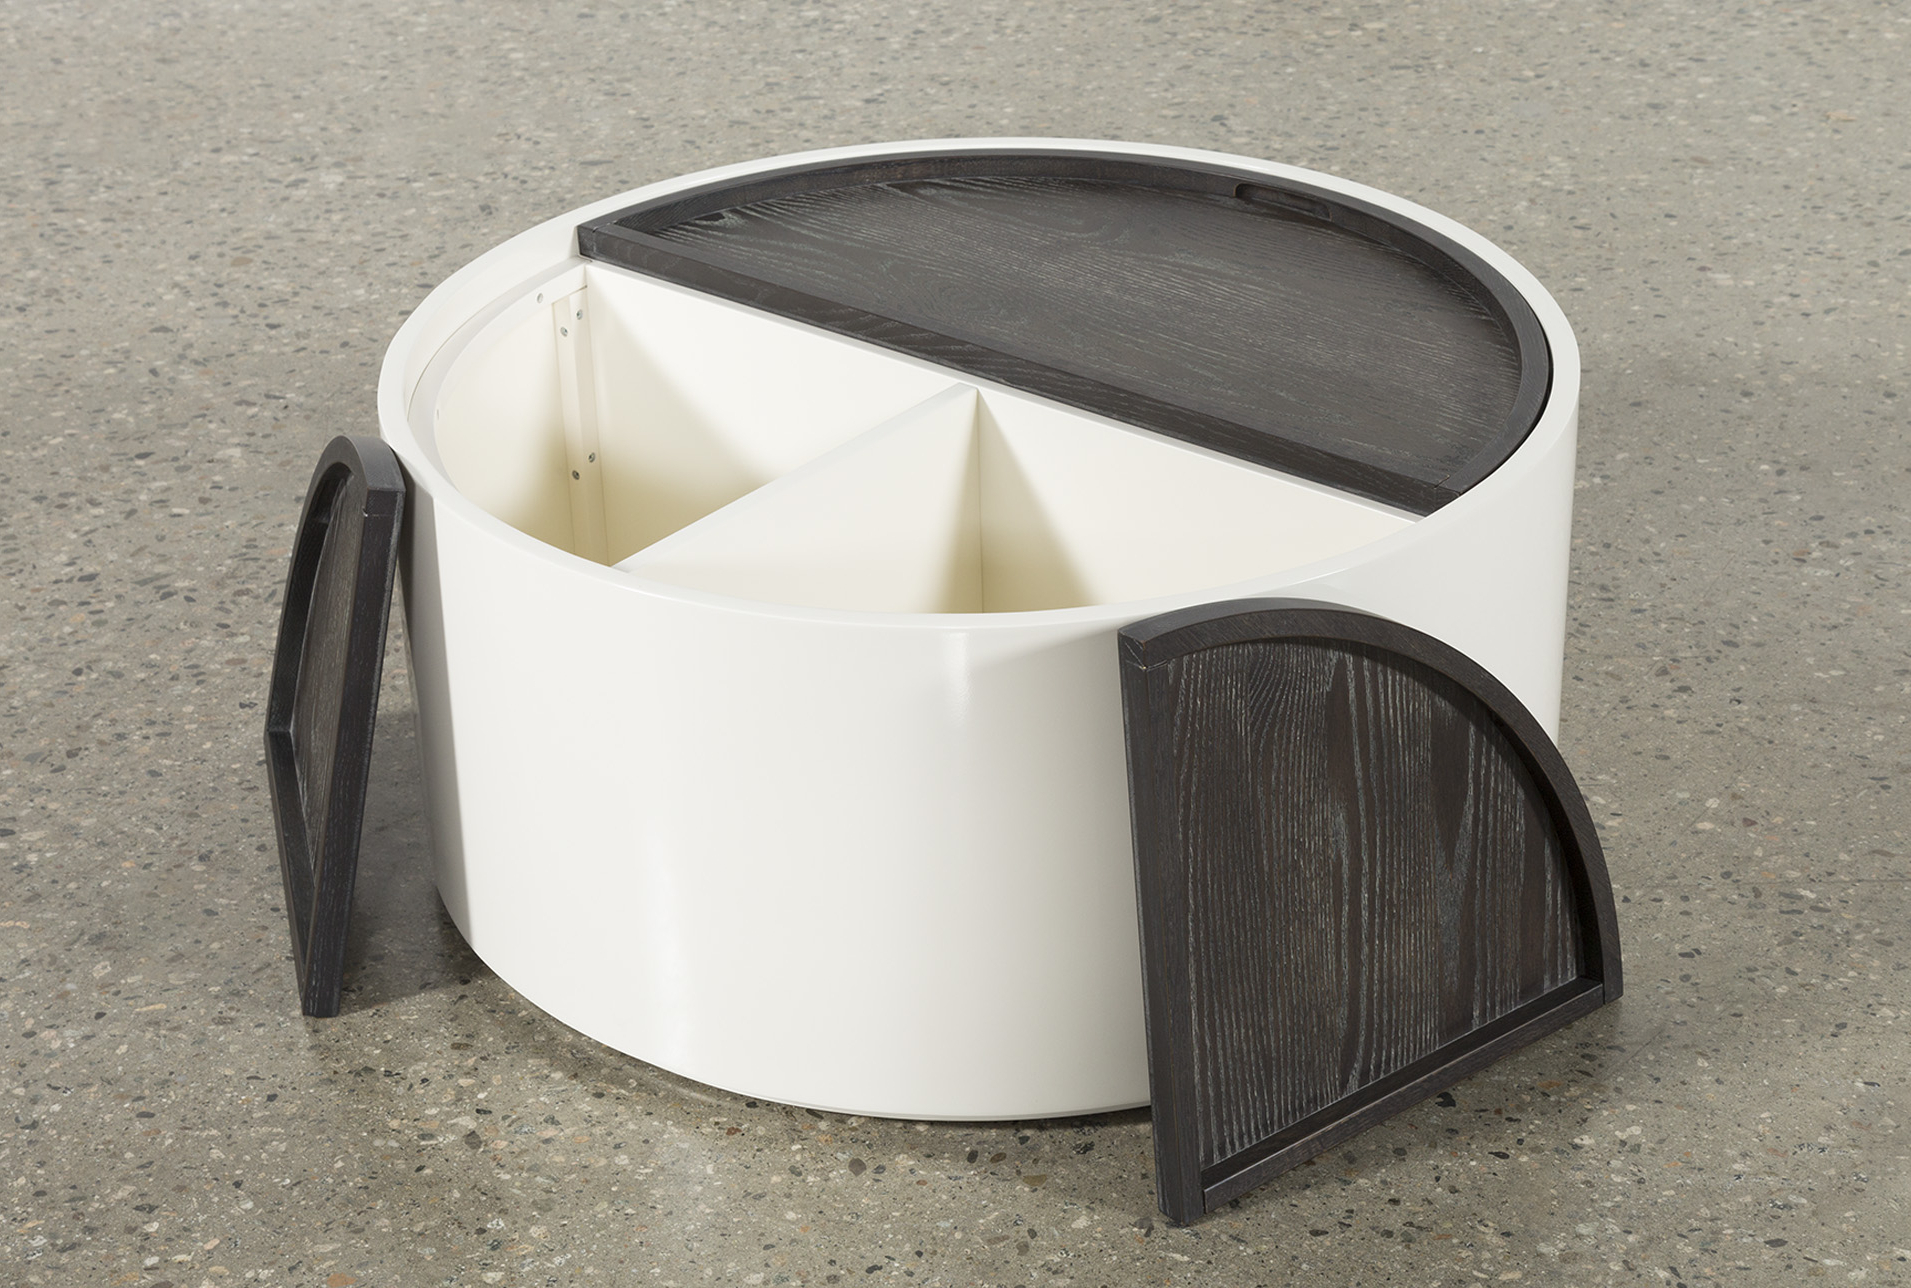 Bale Rustic Grey Round Cocktail Tables With Storage